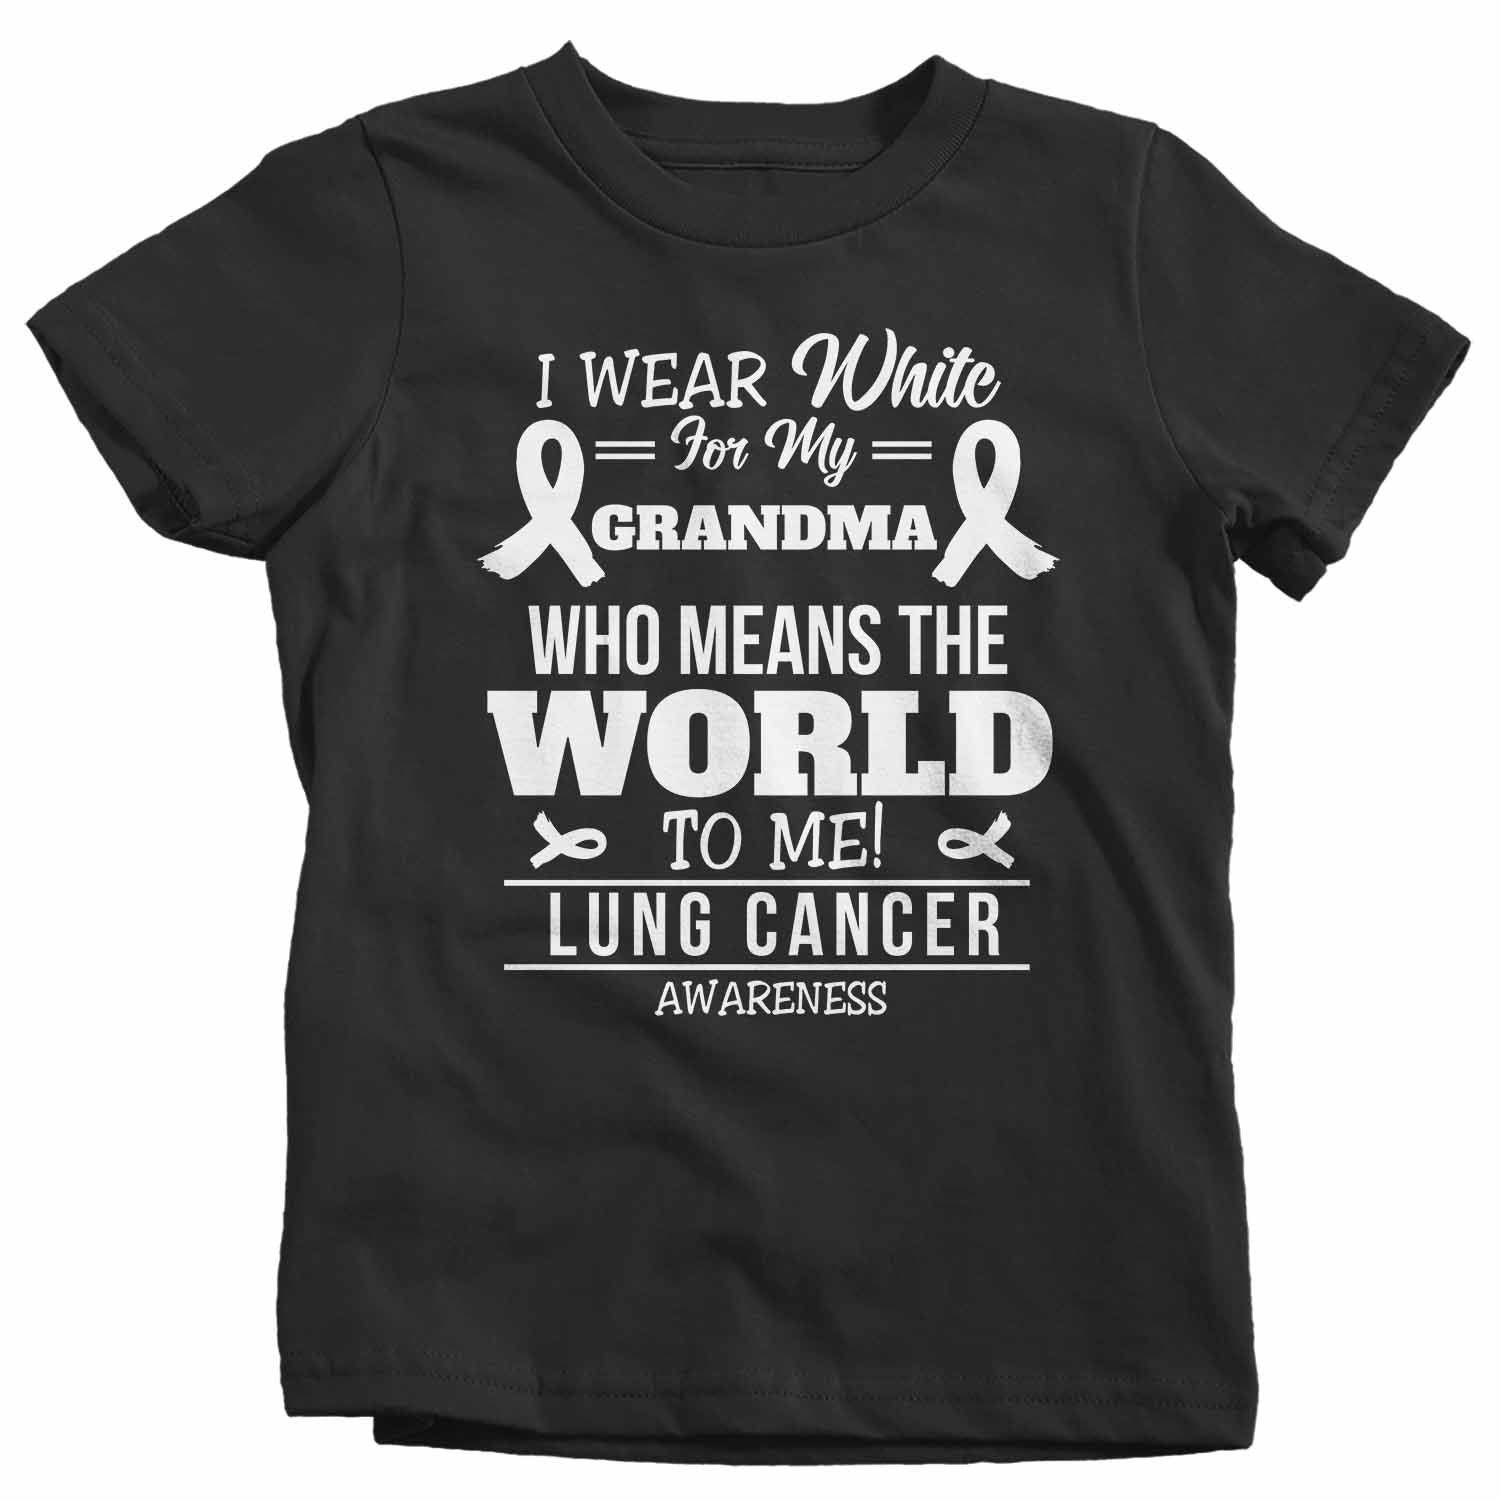 I Wear White for Someone Special T shirts Kids Tees Tops Youth Lung Cancer